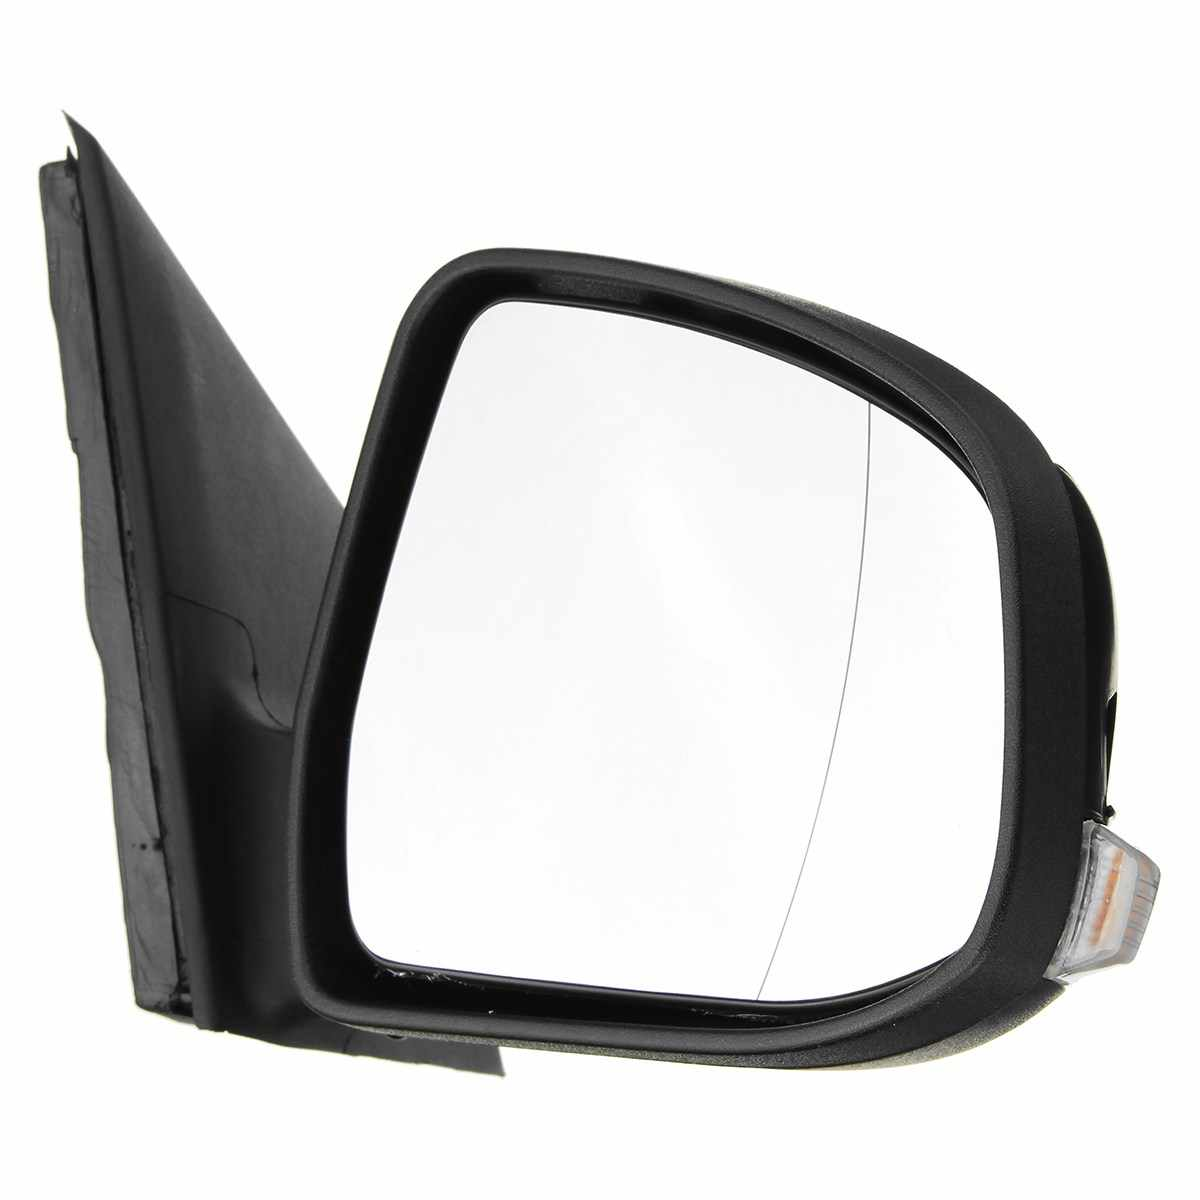 2008 2009 2010 2011 Ford Focus black left hand driver Side View Mirror manual OE